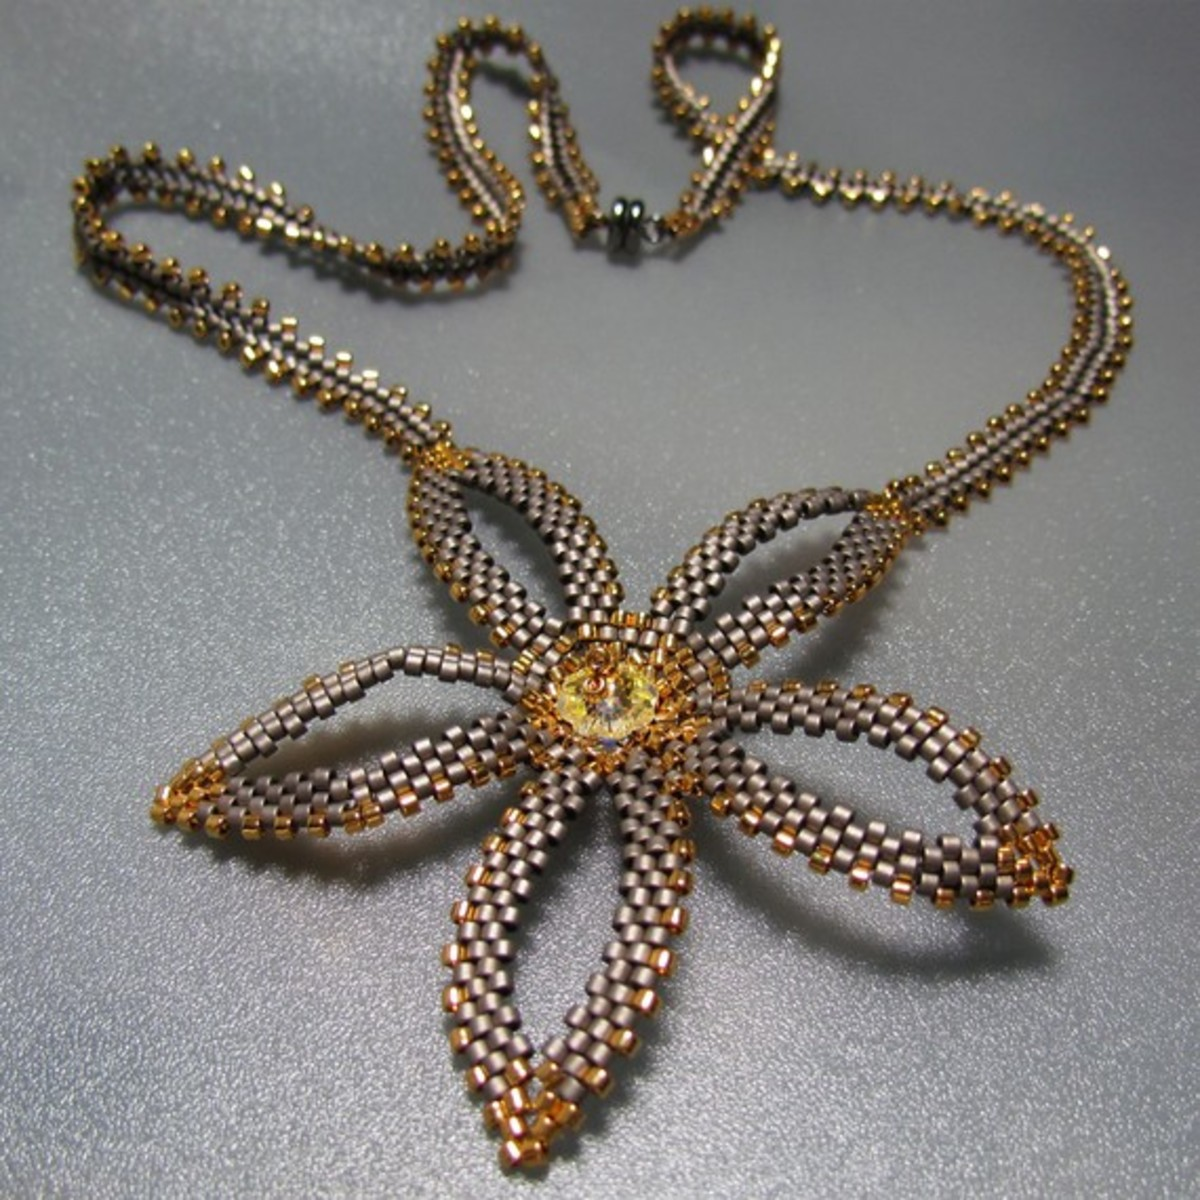 Snowdrop Necklace: This necklace combines a peyote flower with a herringbone rope.